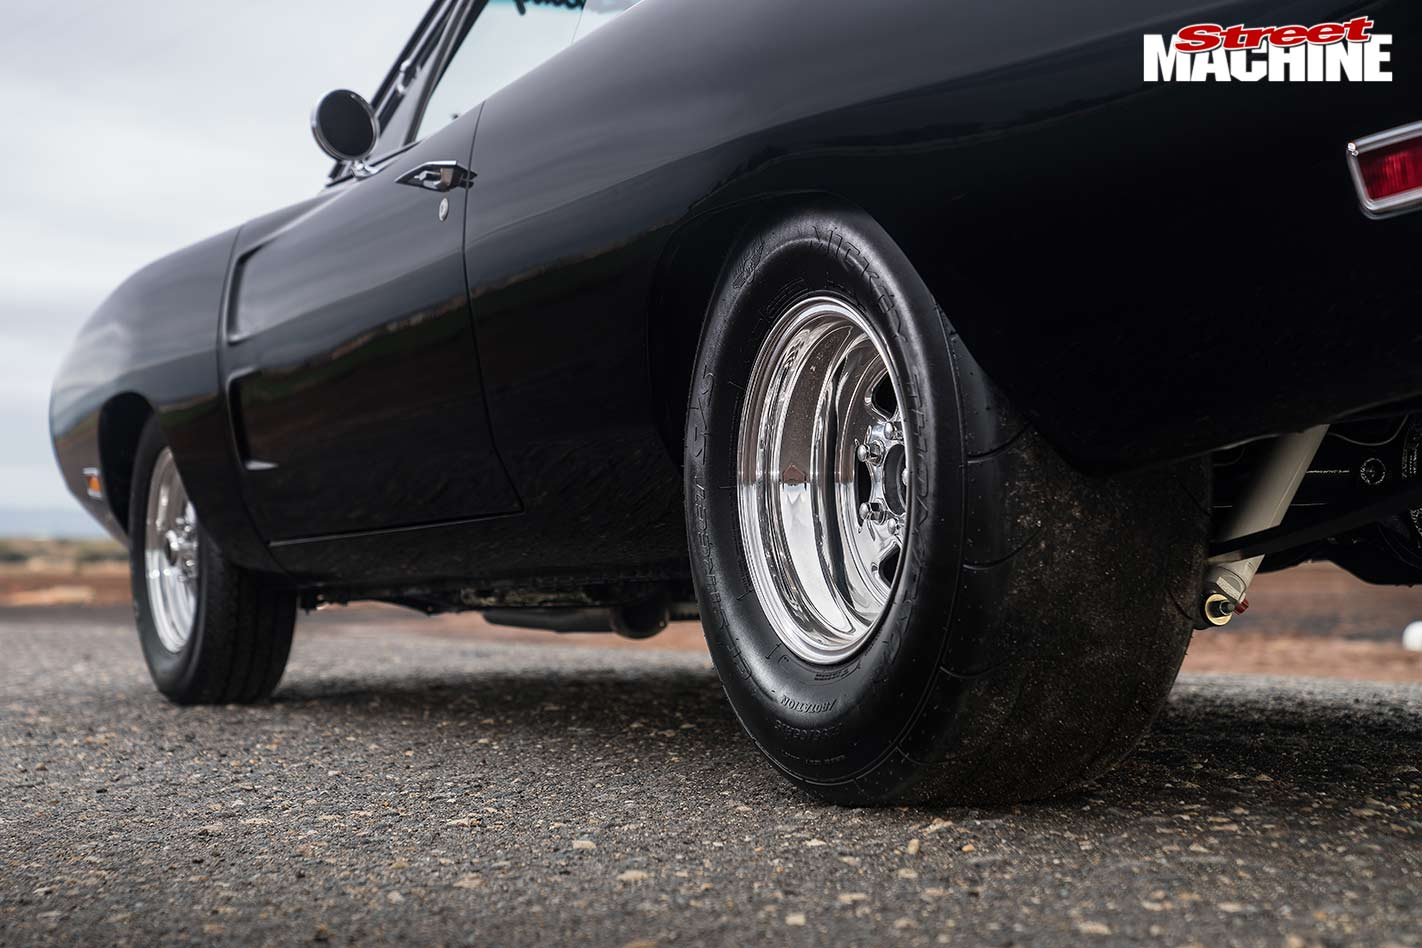 Blown Big Block Fast Furious Dodge Charger Tribute 1968 Drag Car Obviously The Chrysler Engineers And Stylists Had Racing In Mind When They Designed Theres No Problem Fitting A 10in Rim 295 Rubber